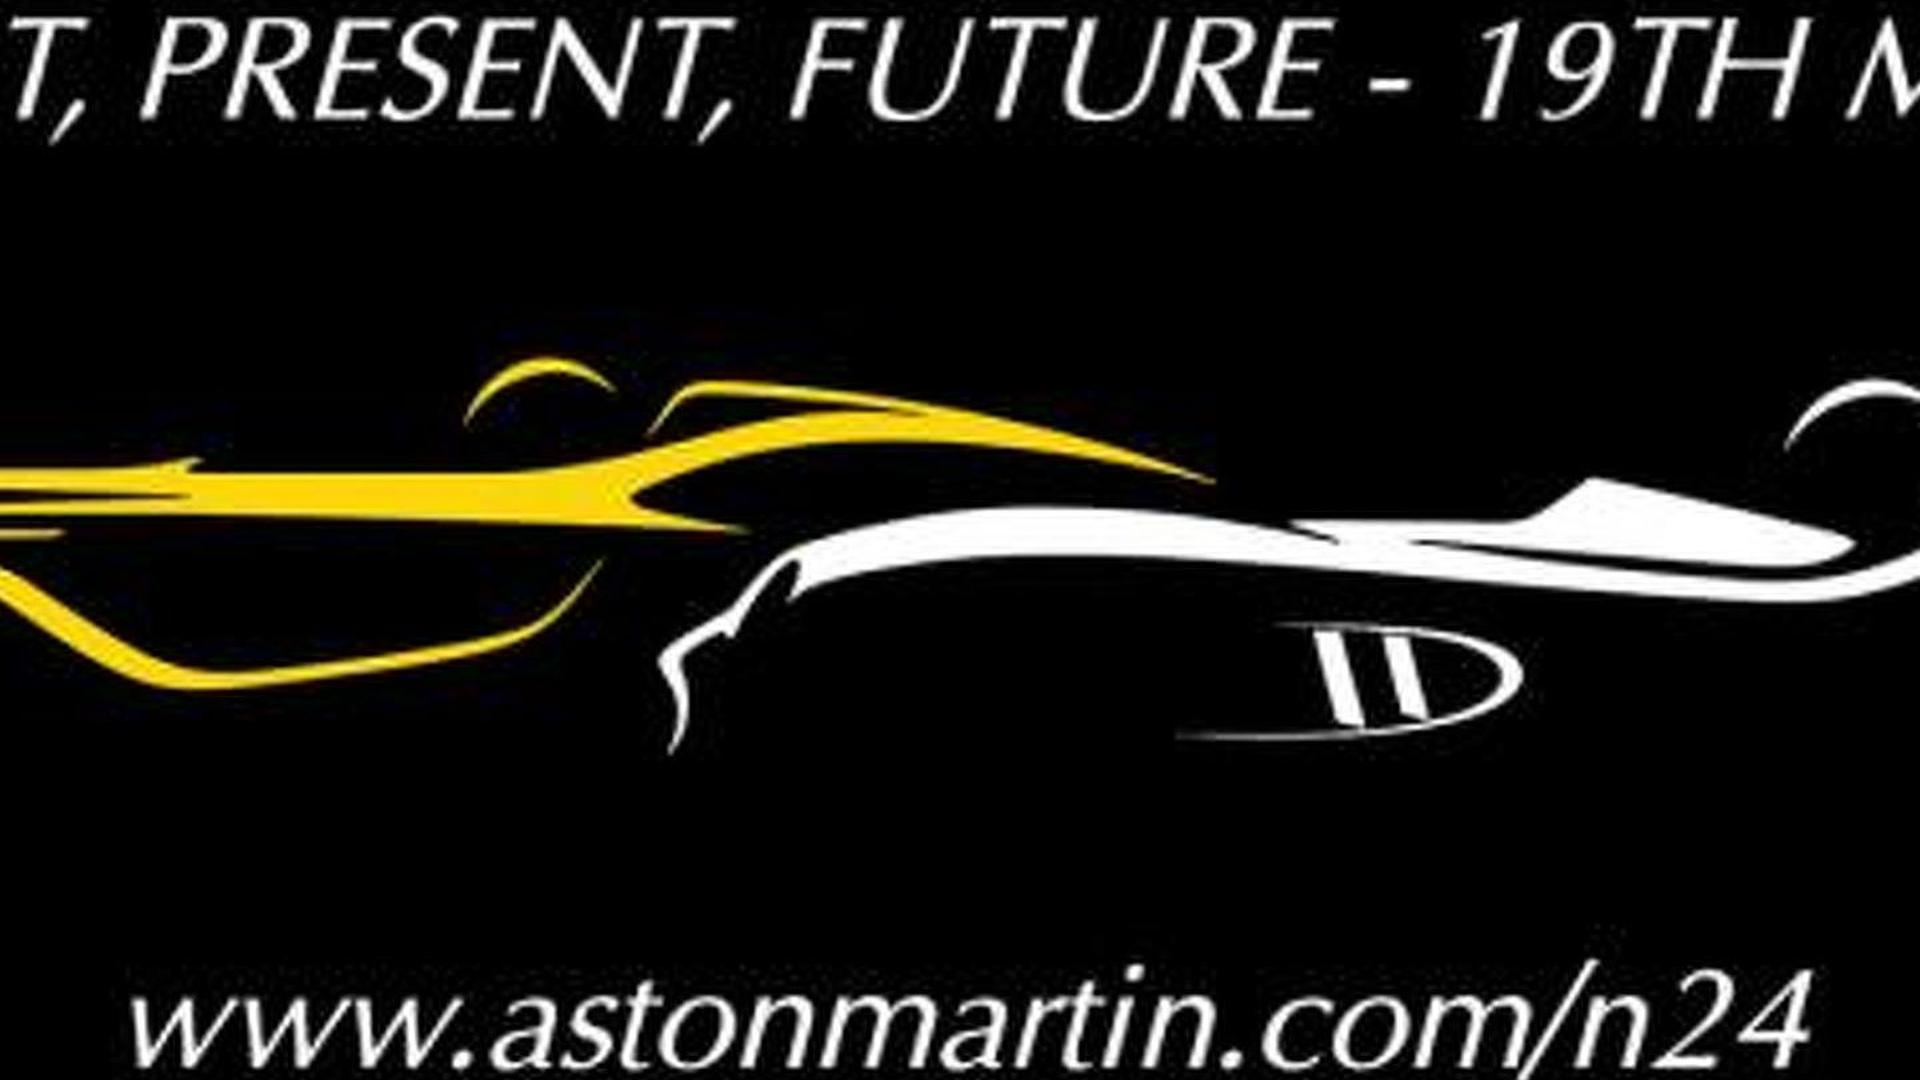 Aston Martin CC100 concept teased for the Nürburgring 24 Hours